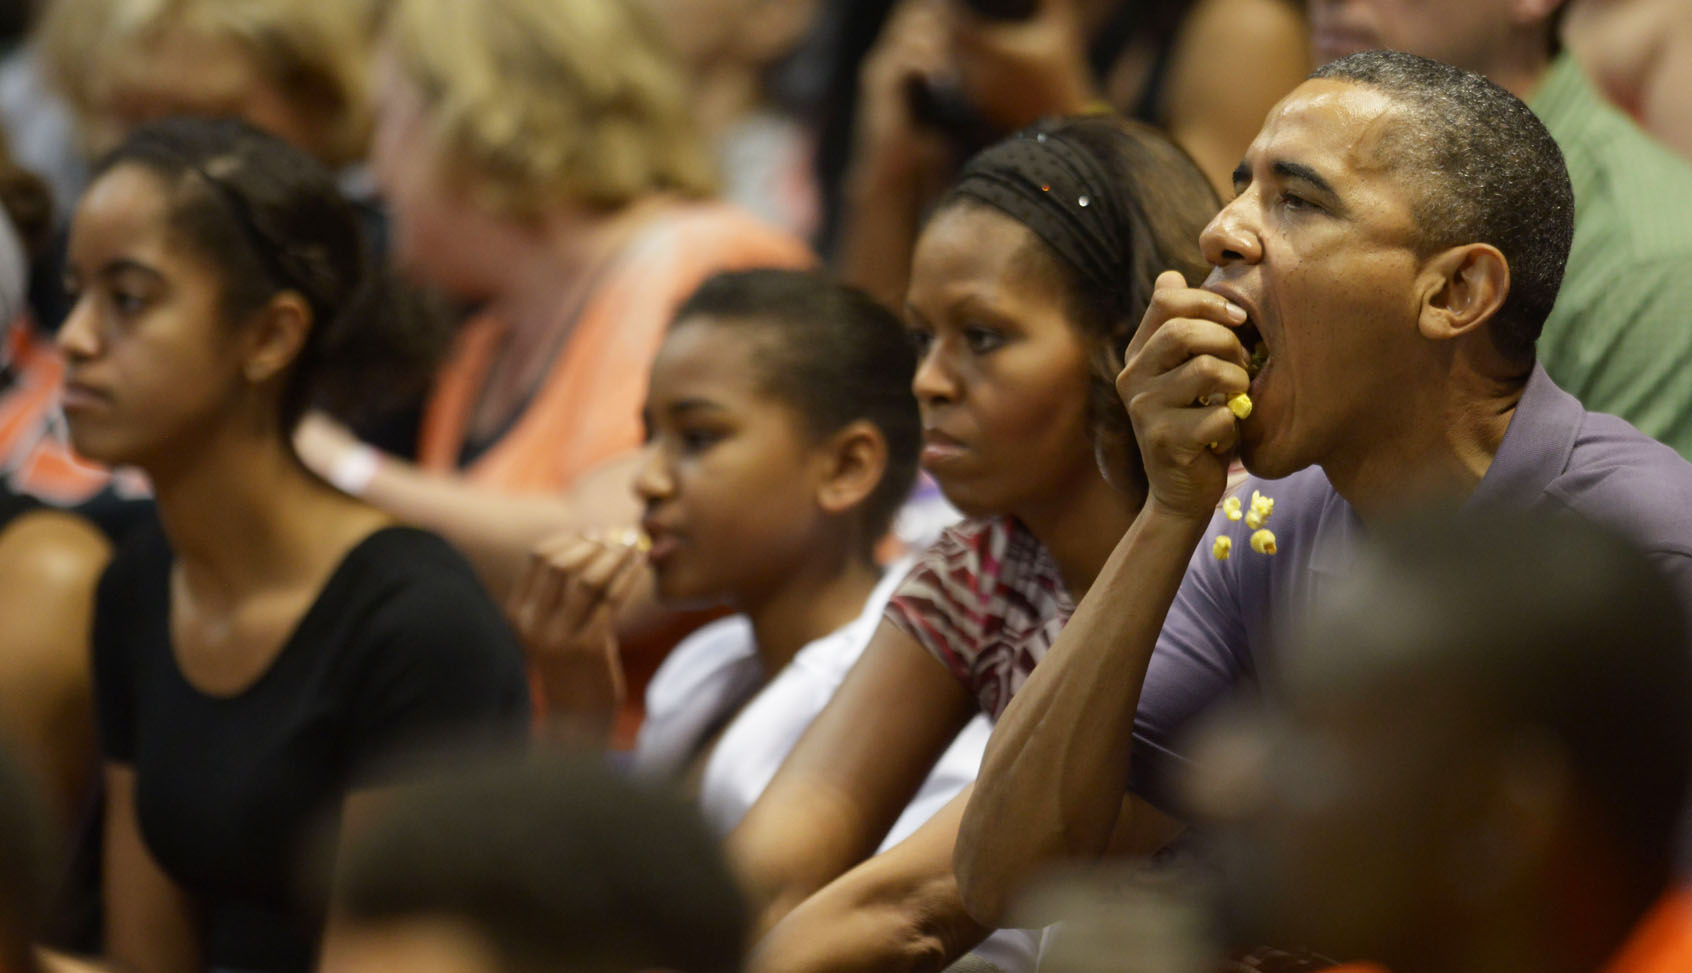 <p>The president loses a few kernels of popcorn as he watches a basketball game in December 2013 at the Stan Sheriff Center with his family, from left, Malia, Sasha and Michelle. They're watching the team from Oregon State, then coached by the first lady's brother, Craig Robinson.</p>